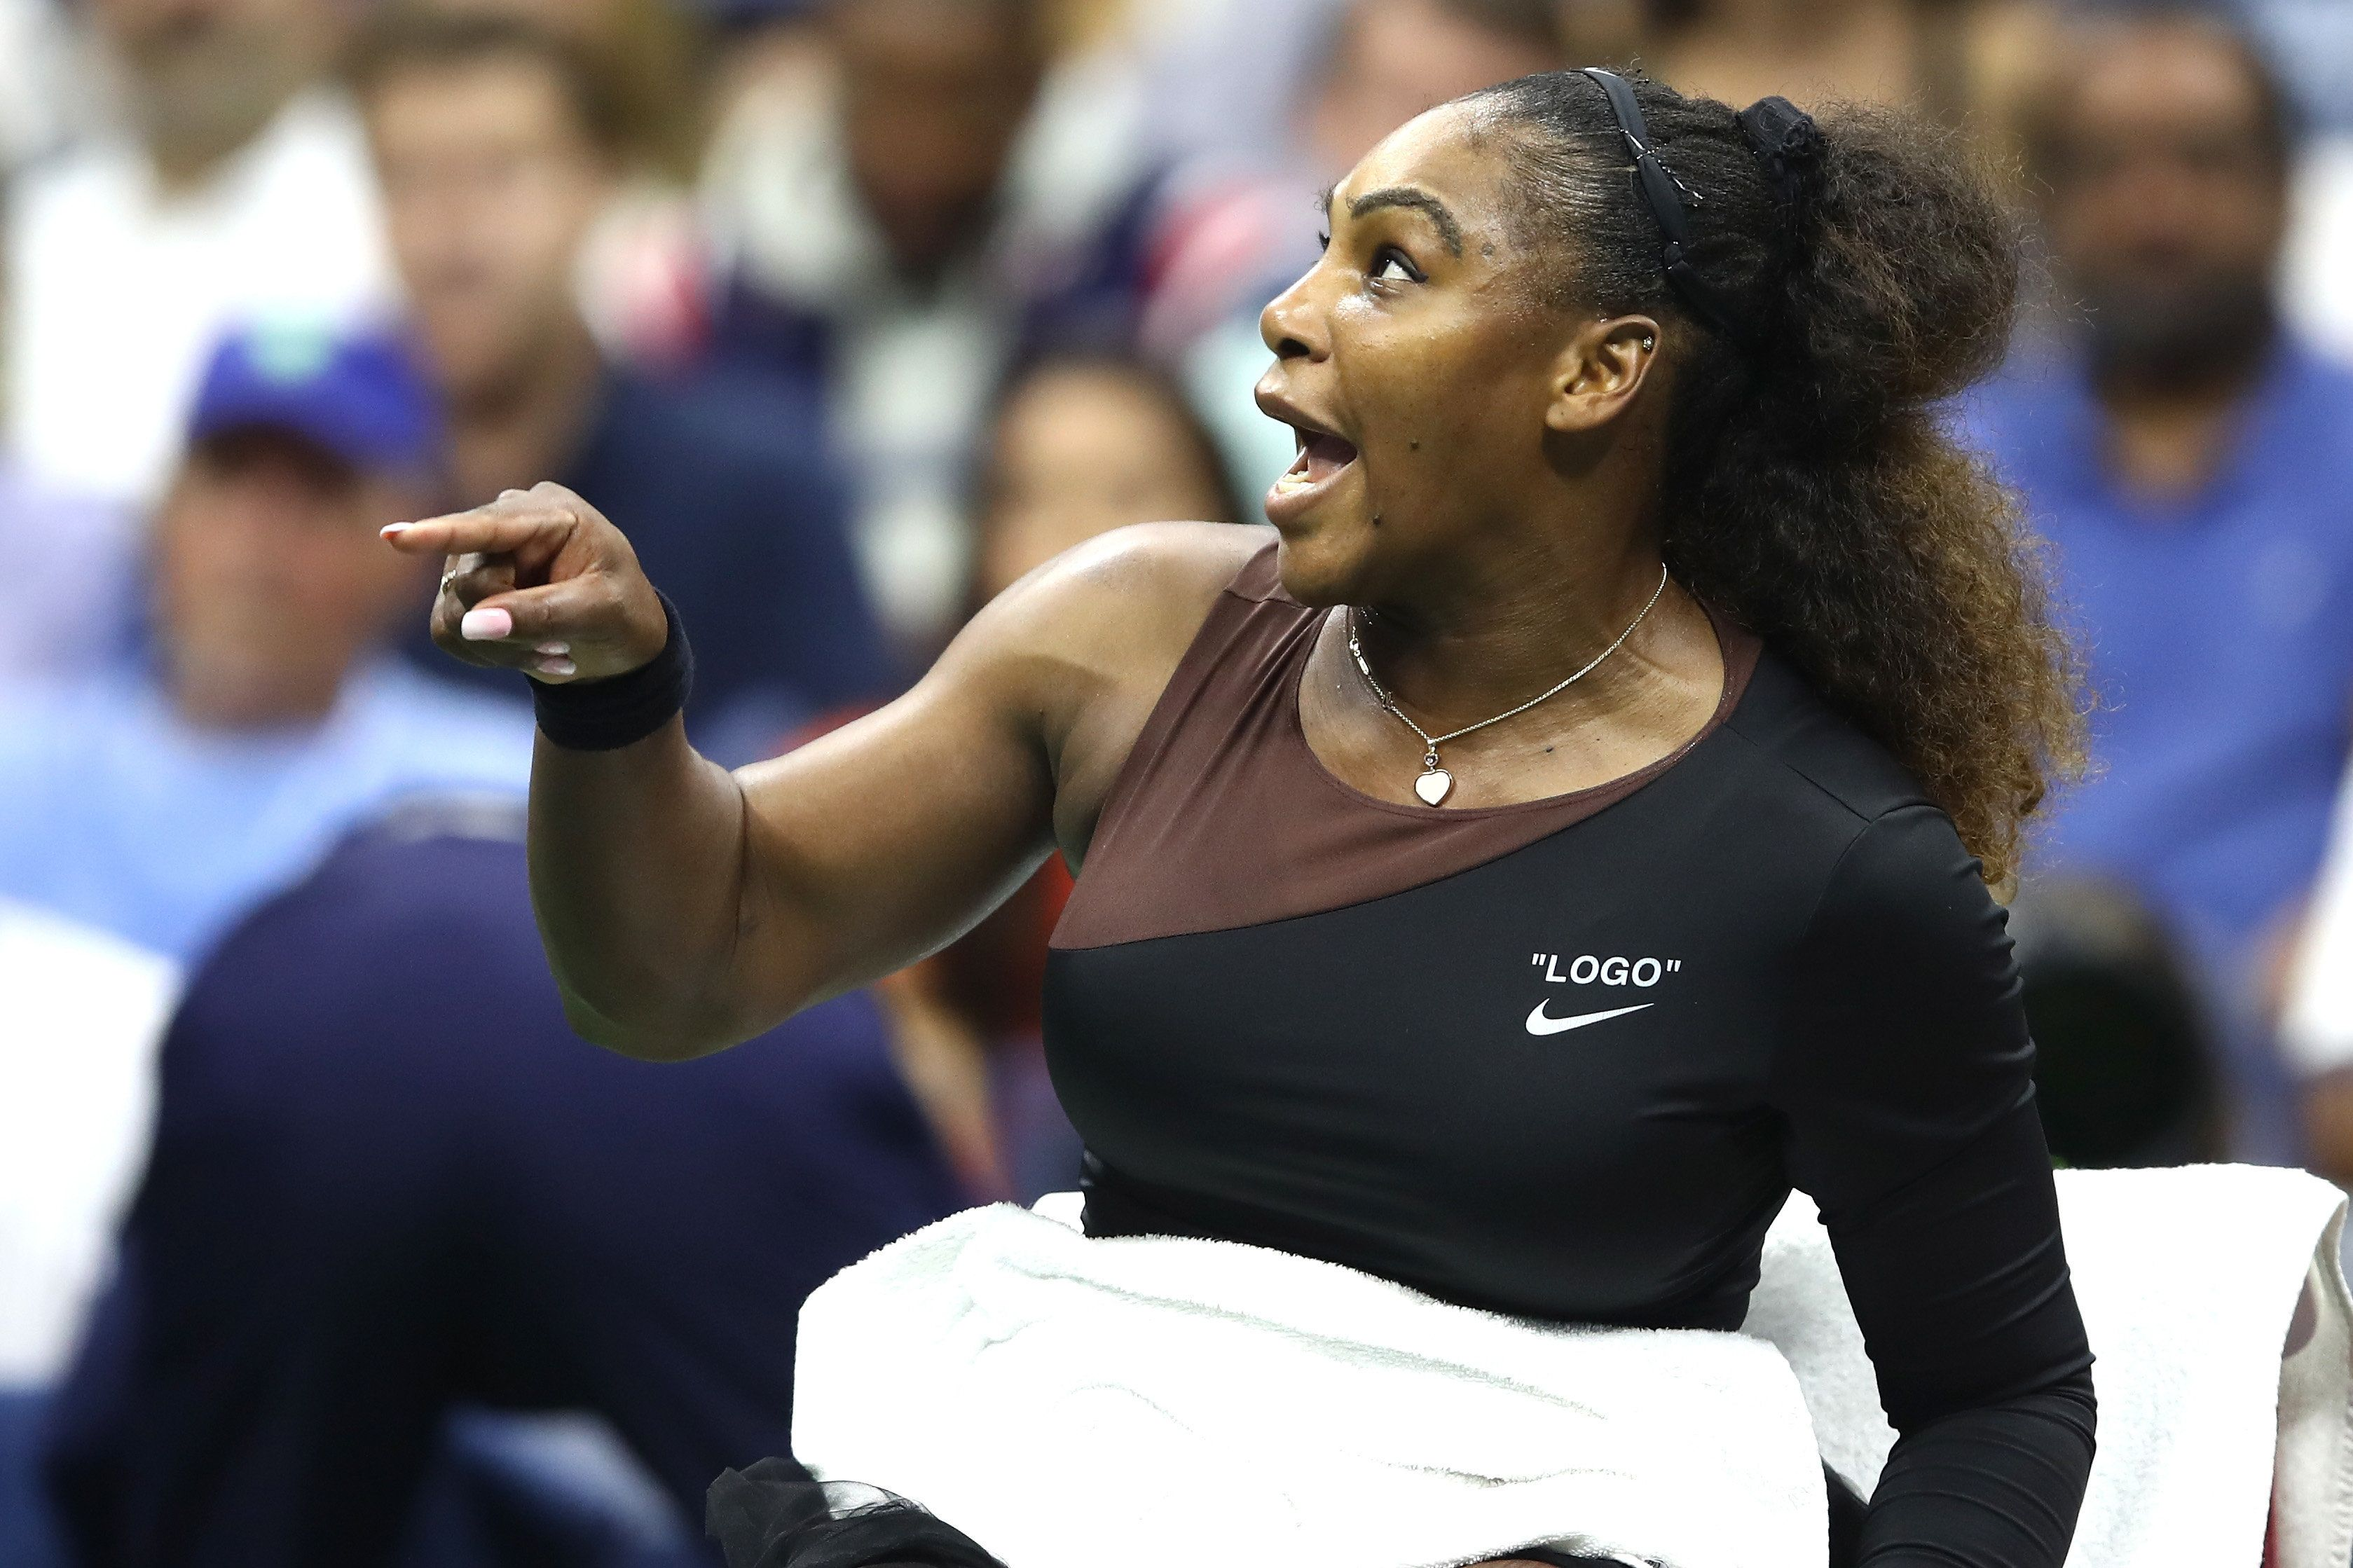 NEW YORK, NY - SEPTEMBER 08:  Serena Williams of the United States argues with umpire Carlos Ramos during her Women's Singles finals match against Naomi Osaka of Japan on Day Thirteen of the 2018 US Open at the USTA Billie Jean King National Tennis Center on September 8, 2018 in the Flushing neighborhood of the Queens borough of New York City.  (Photo by Julian Finney/Getty Images)